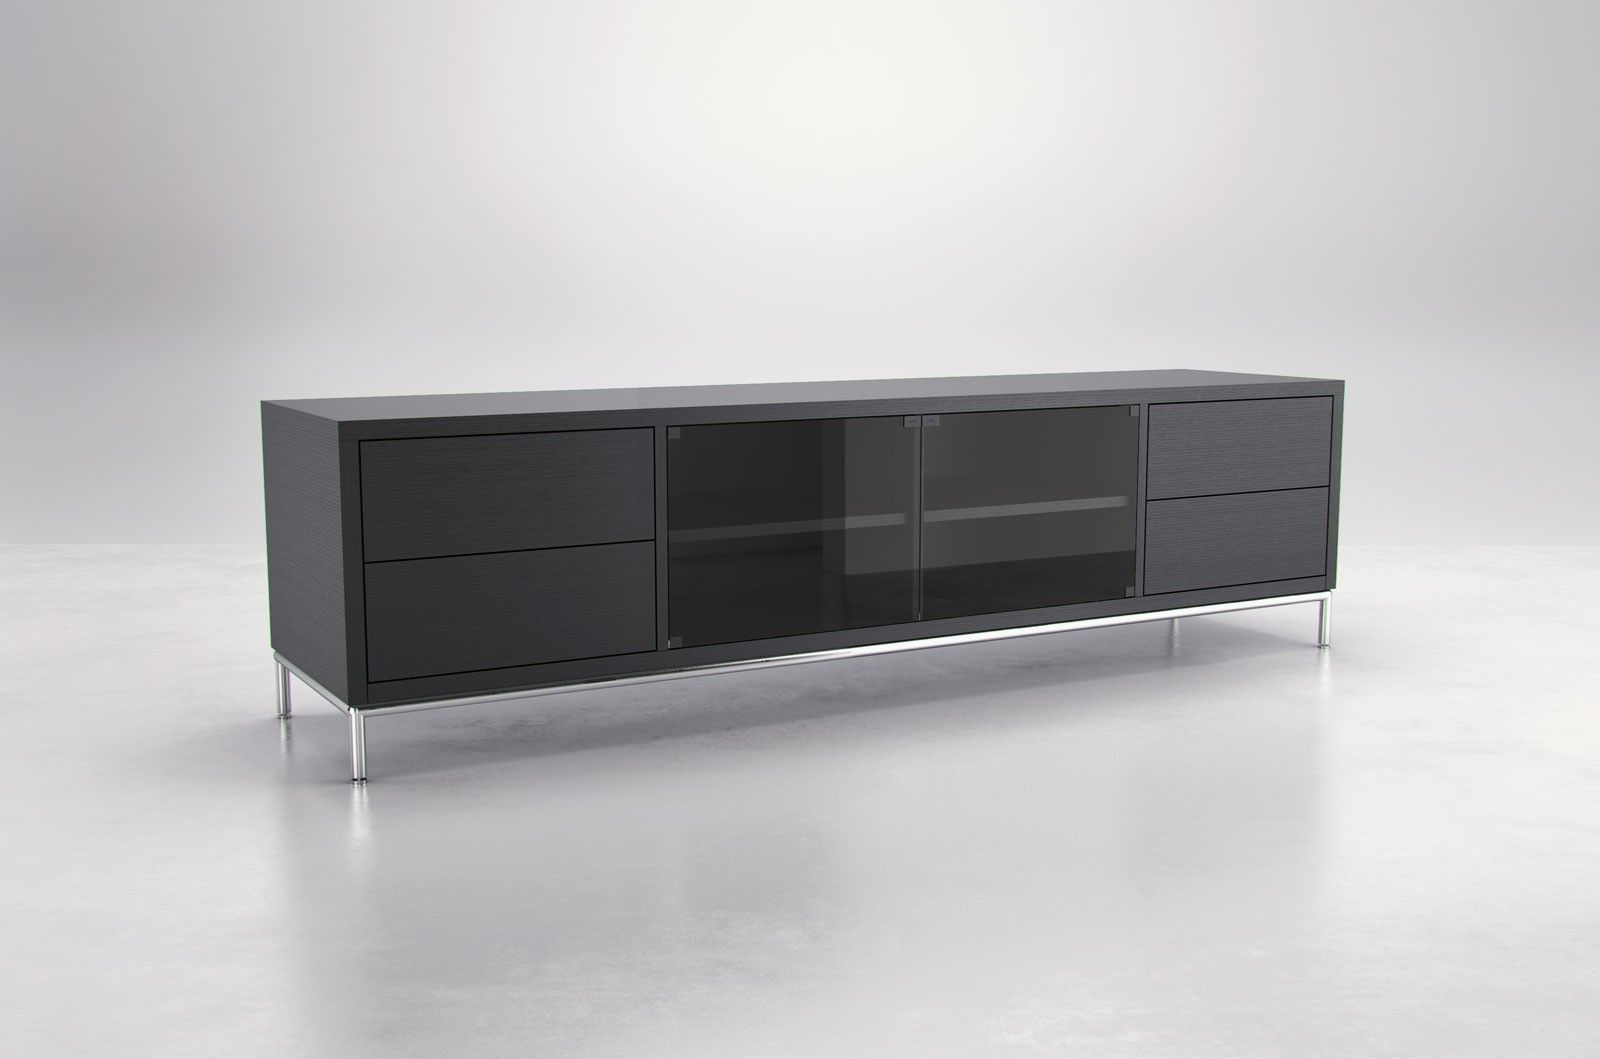 cado modern furniture  lenox modern media cabinet  media cabinet  - cado modern furniture  lenox modern media cabinet